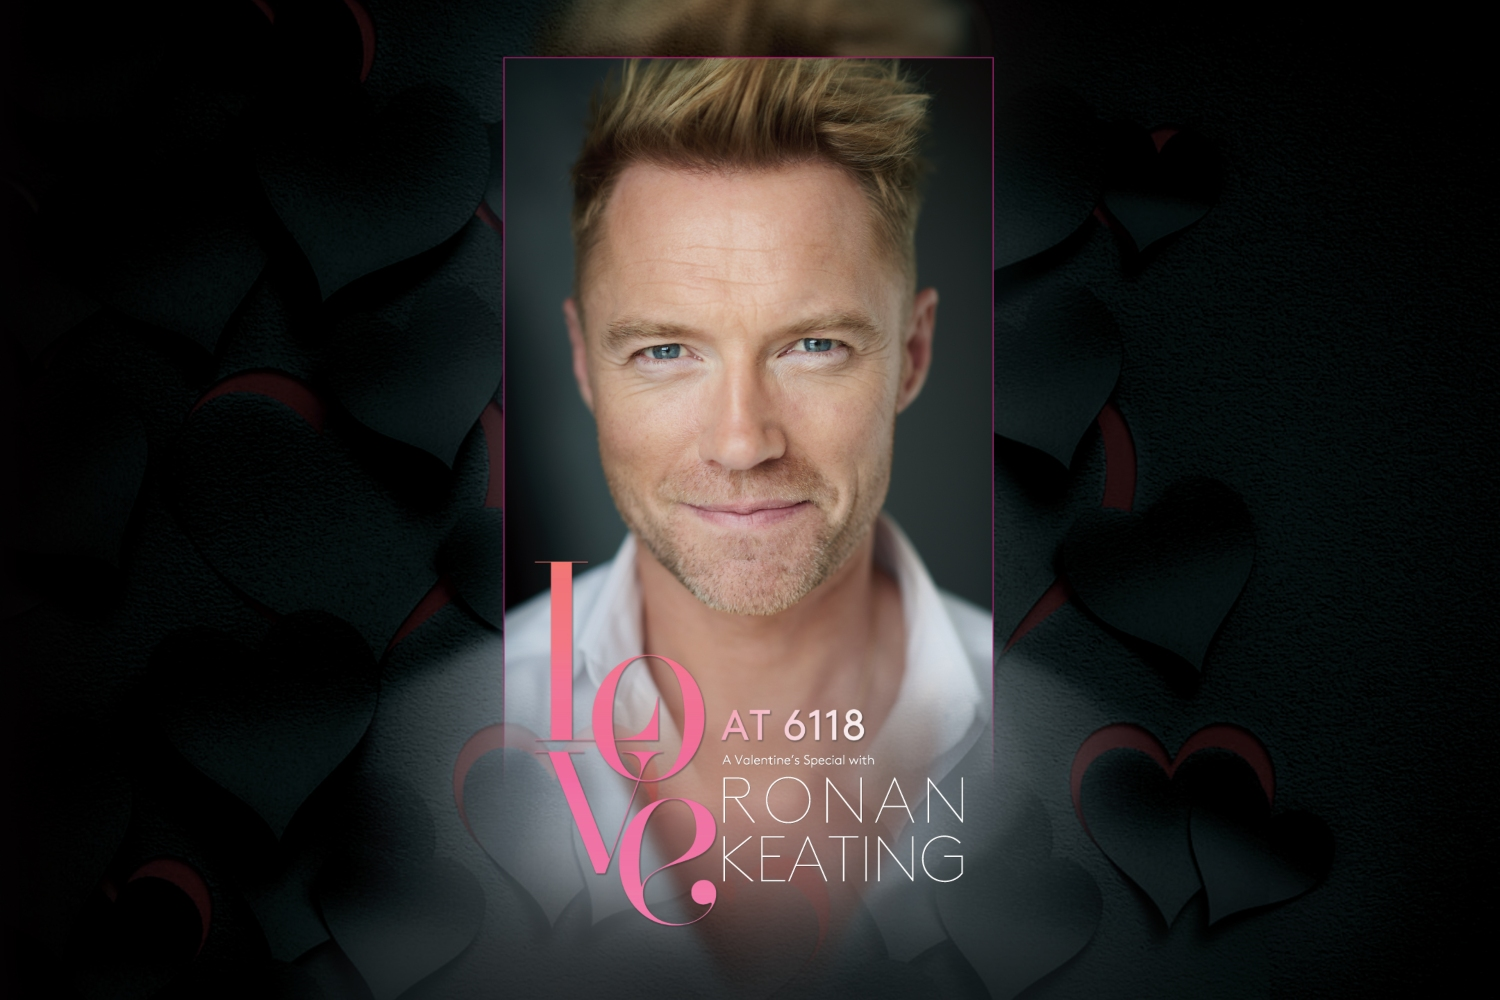 WIN A Valentine's Day Special With Ronan Keating!